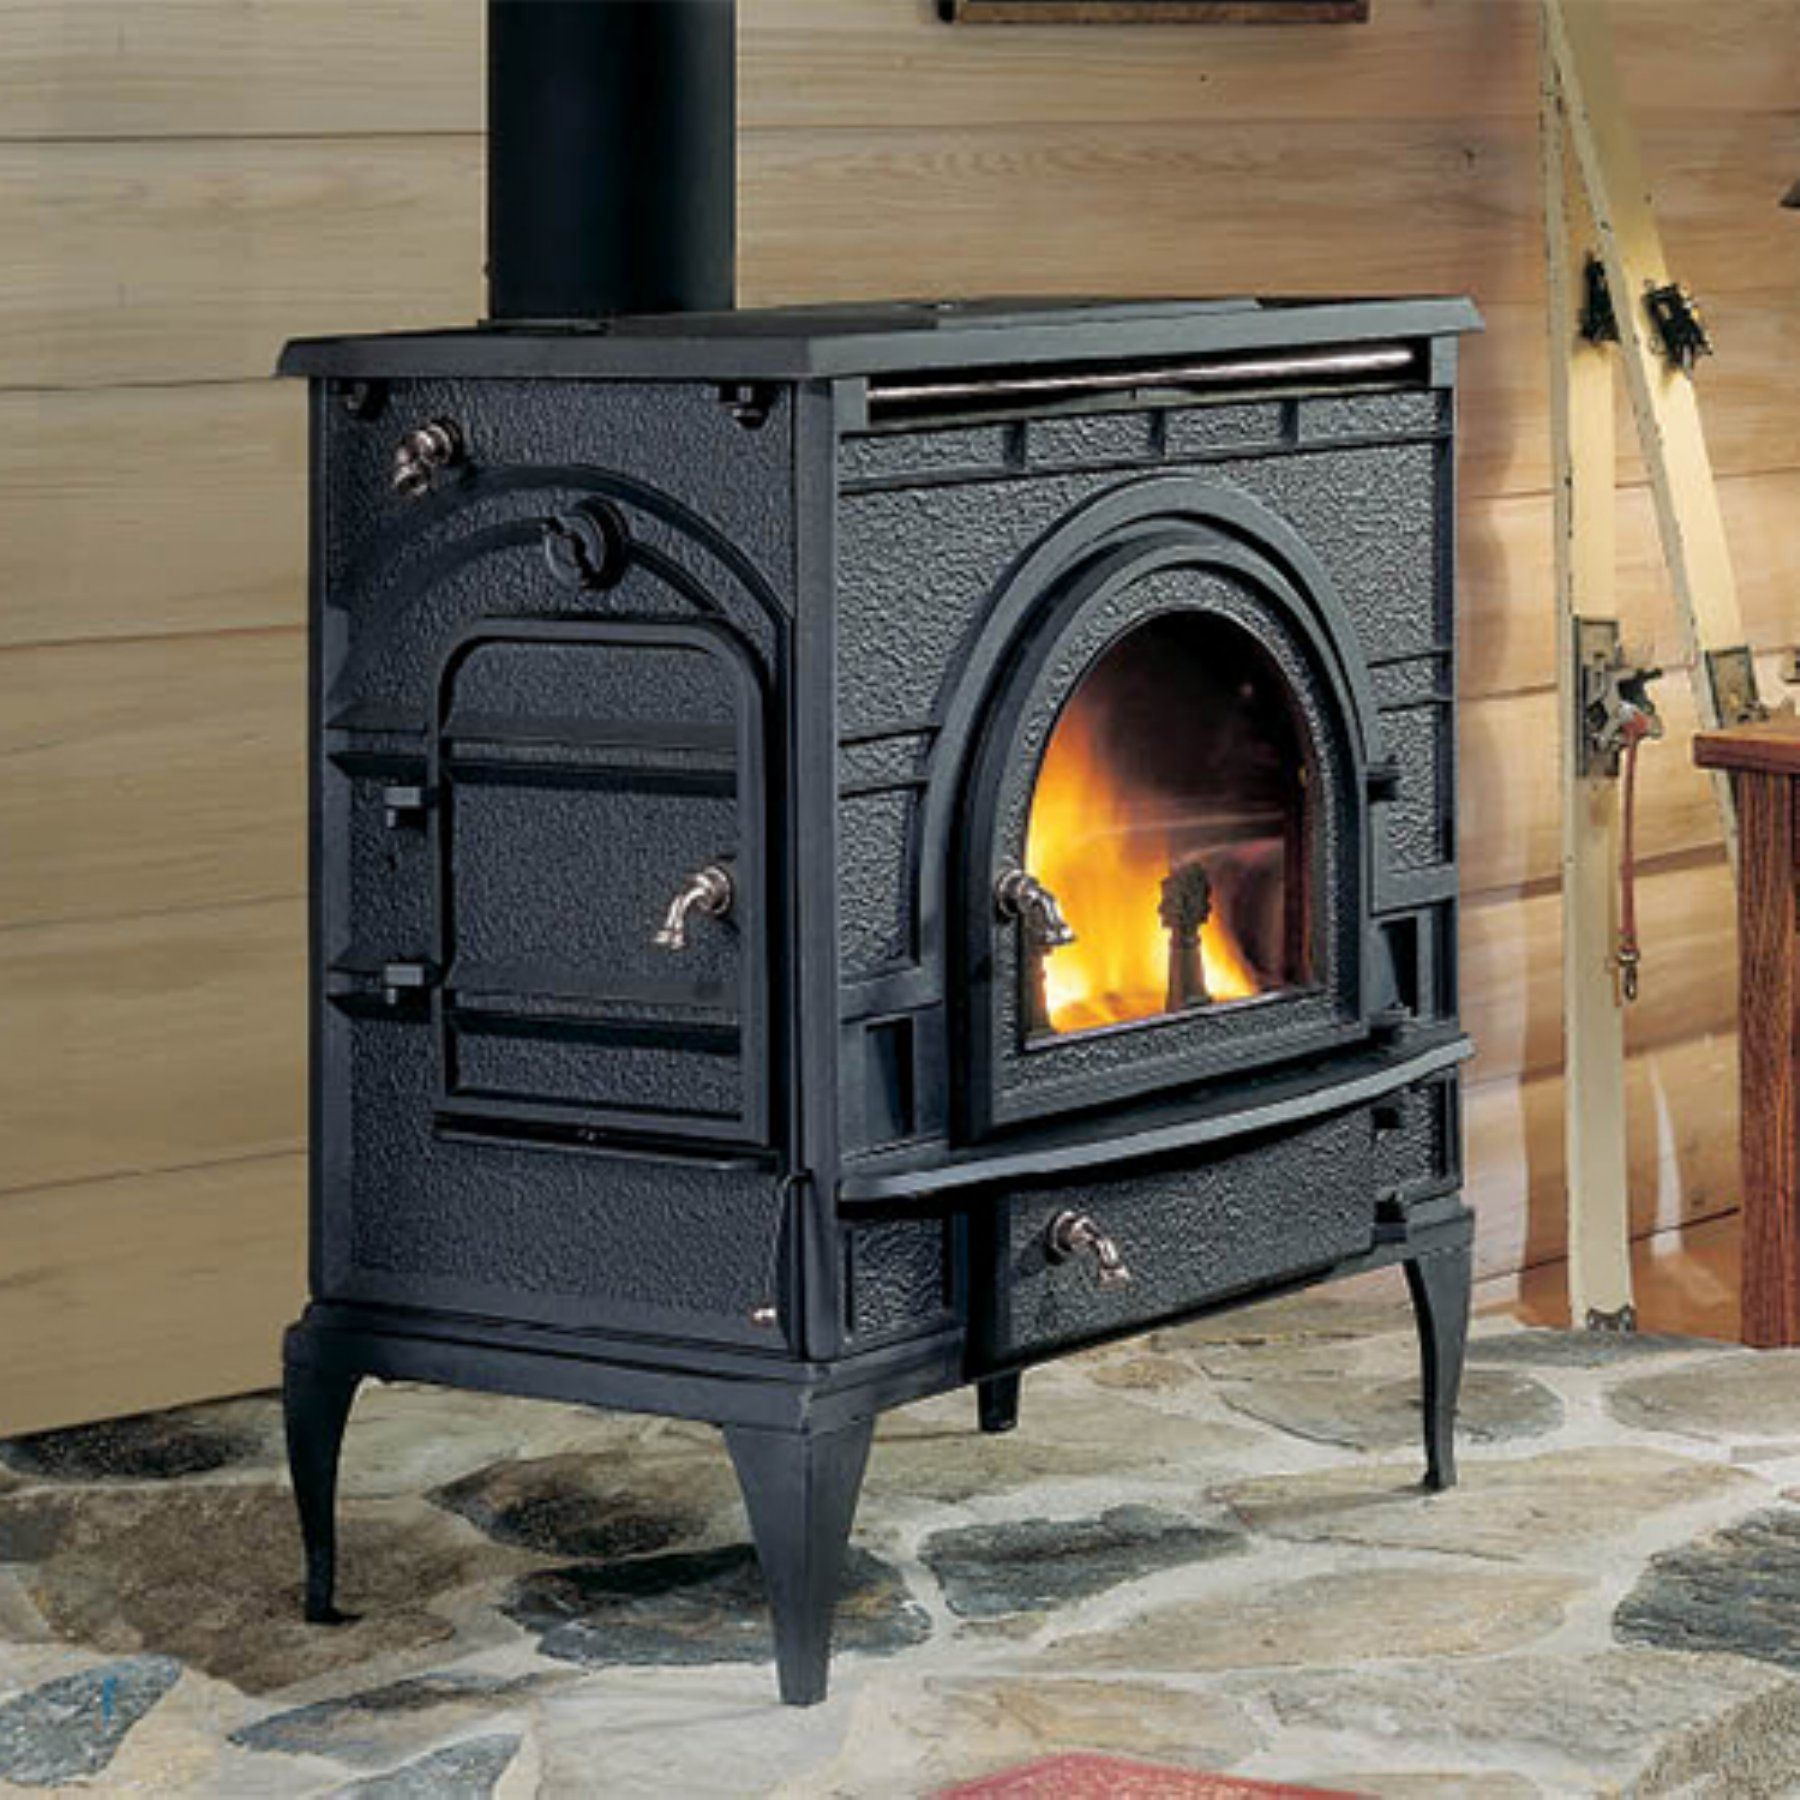 Most Efficient Fireplace Lovely Majestic Dutchwest Catalytic Wood Stove Ned220